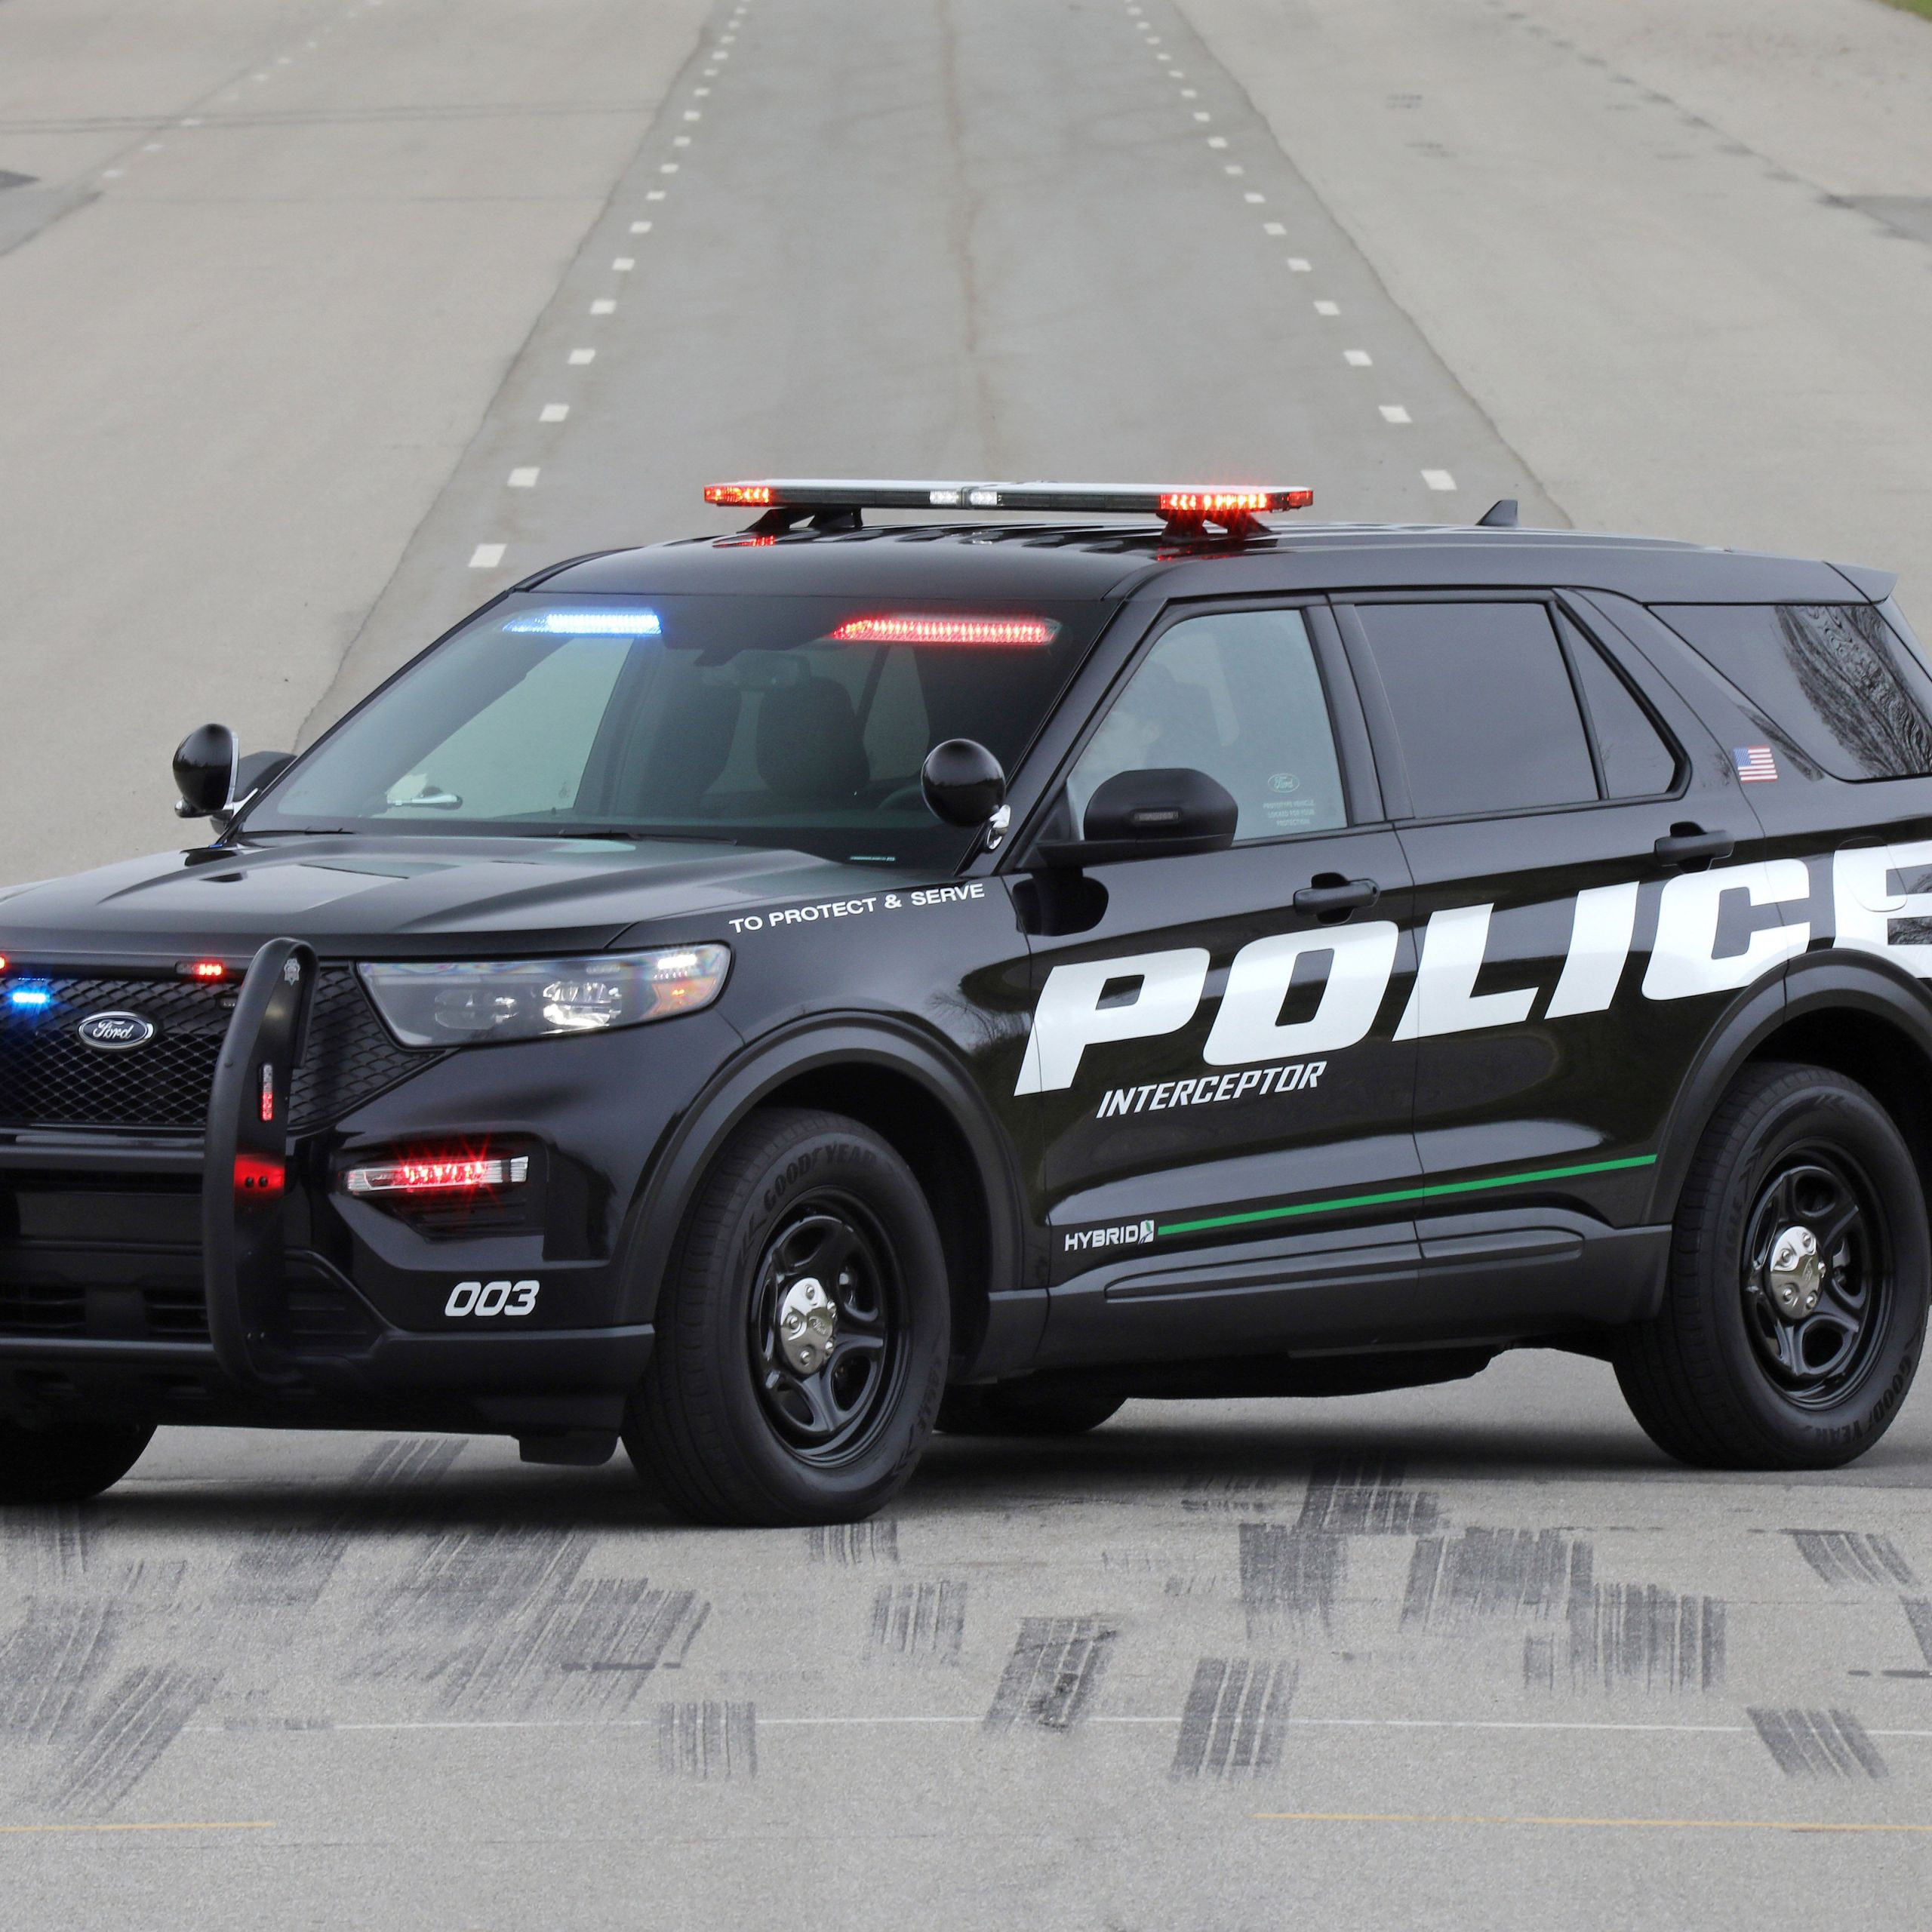 Police Interceptor Cars for Sale Near Me Unique ford Police Interceptor Utility Hybrid Awd Saves Gas Specs